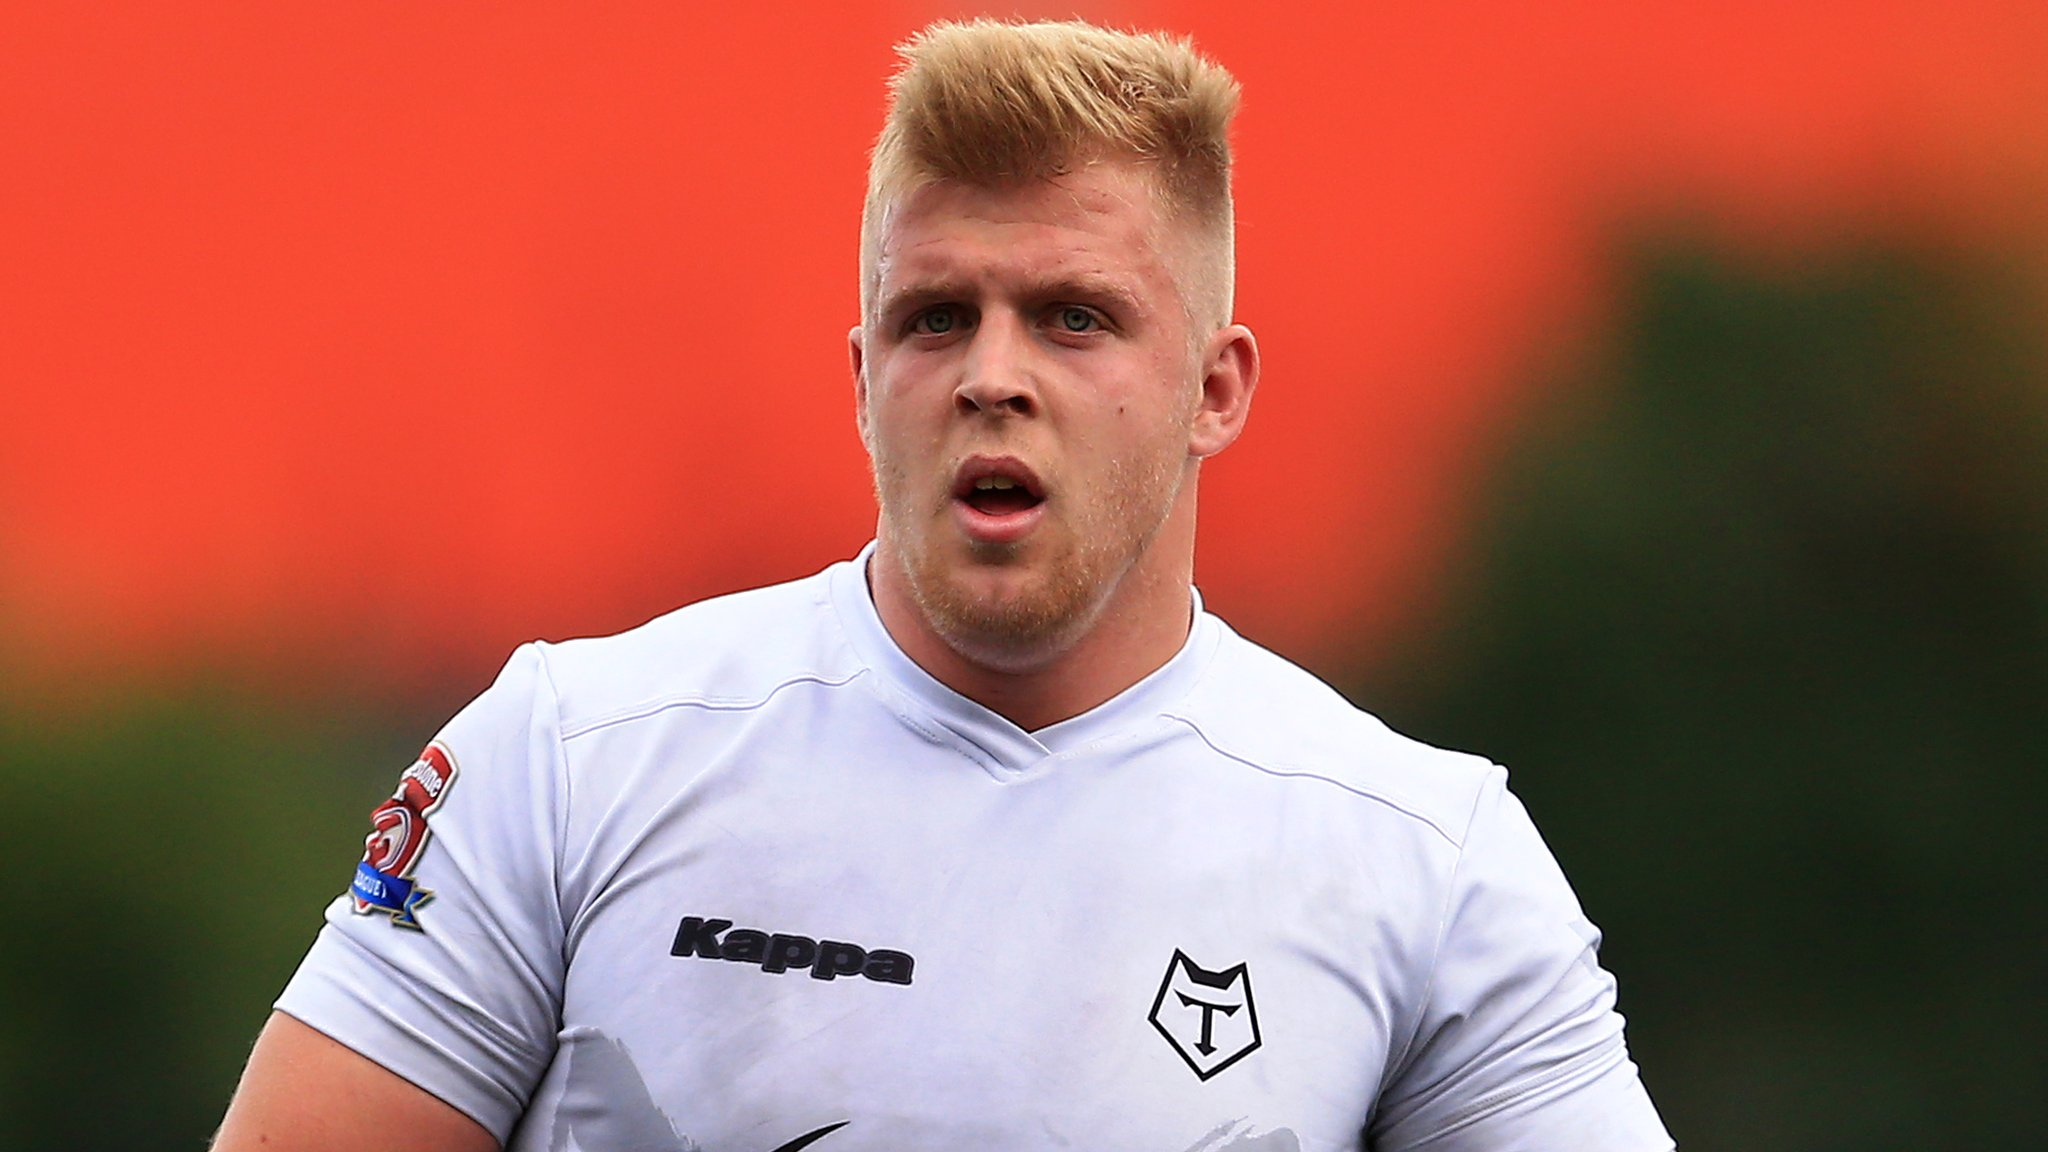 Toronto Wolfpack forward Bussey gets eight-game ban for biting